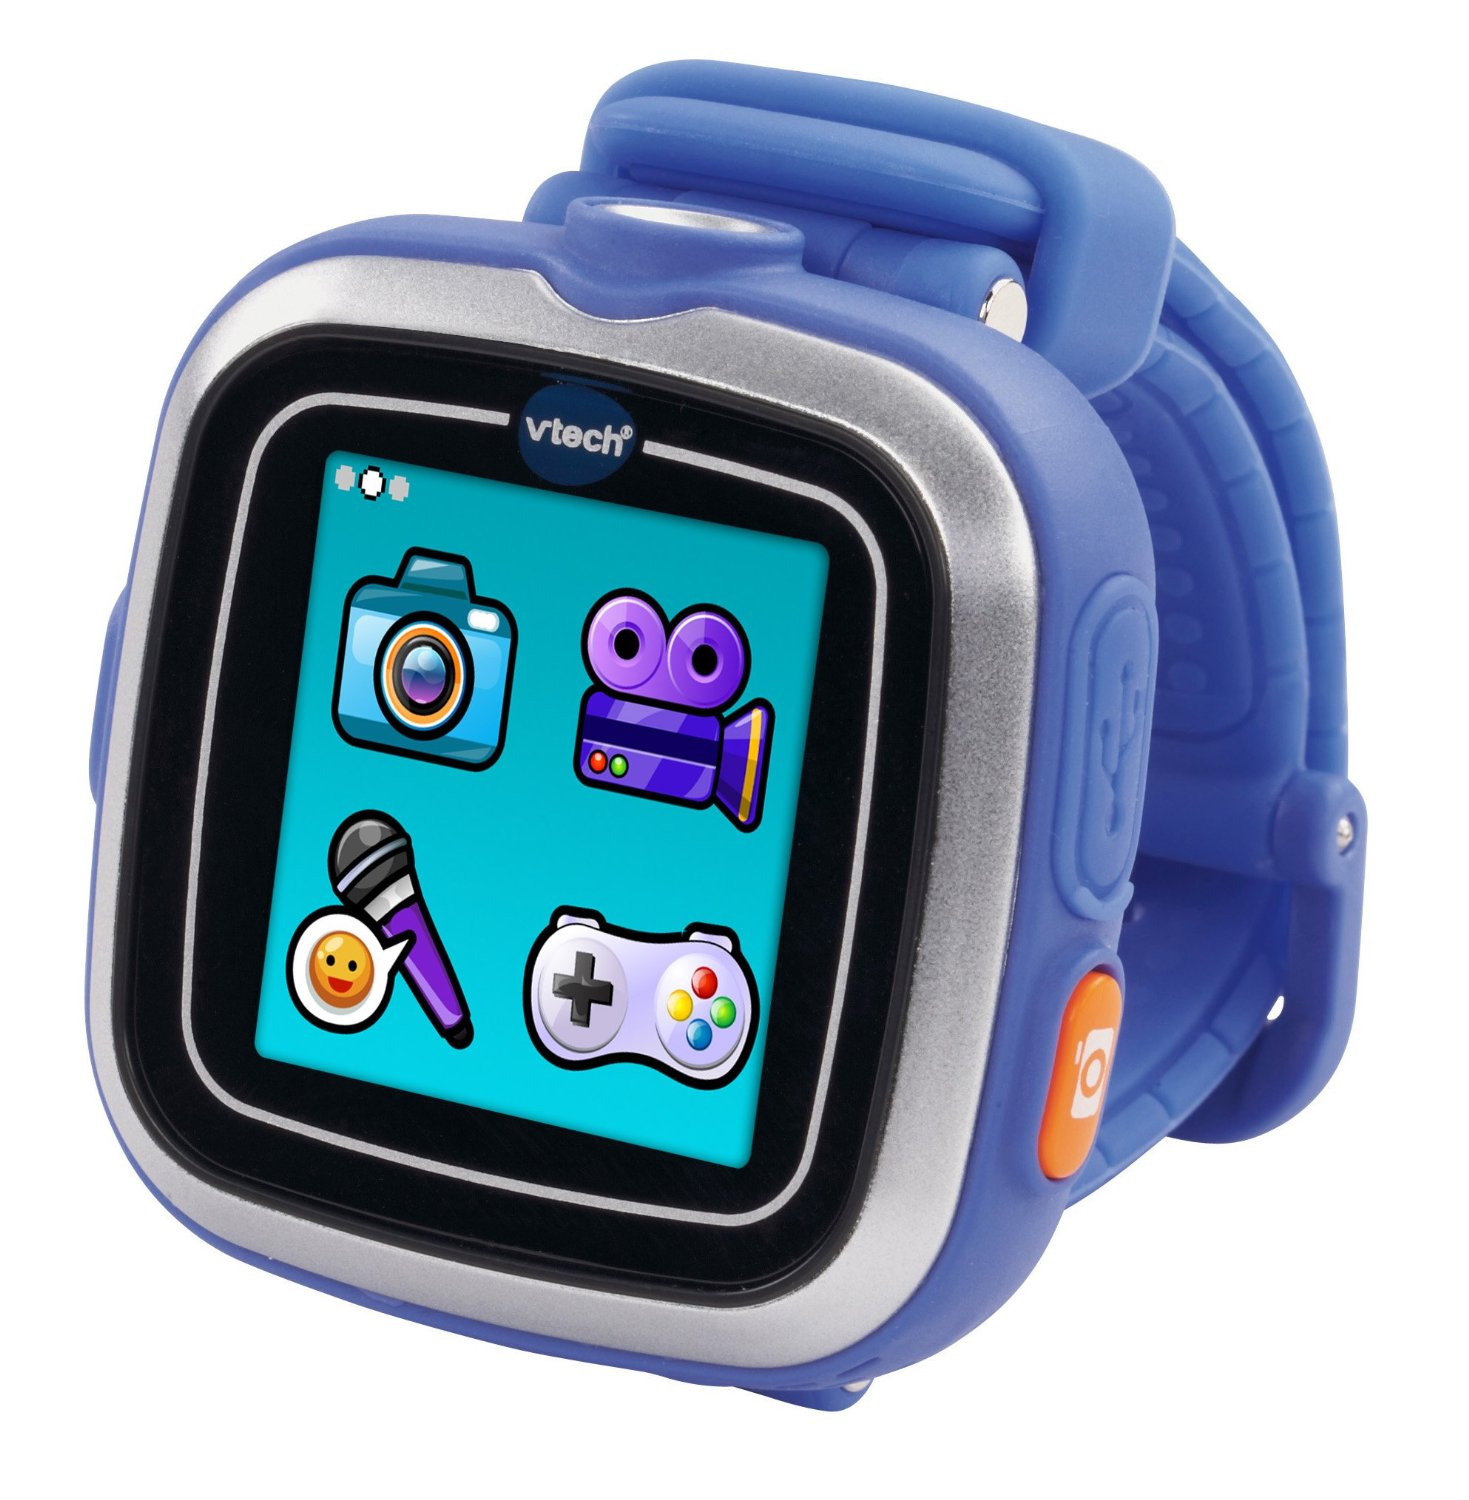 VTech Kidizoom Smartwatch, Blue (Discontinued by manufacturer) by VTech